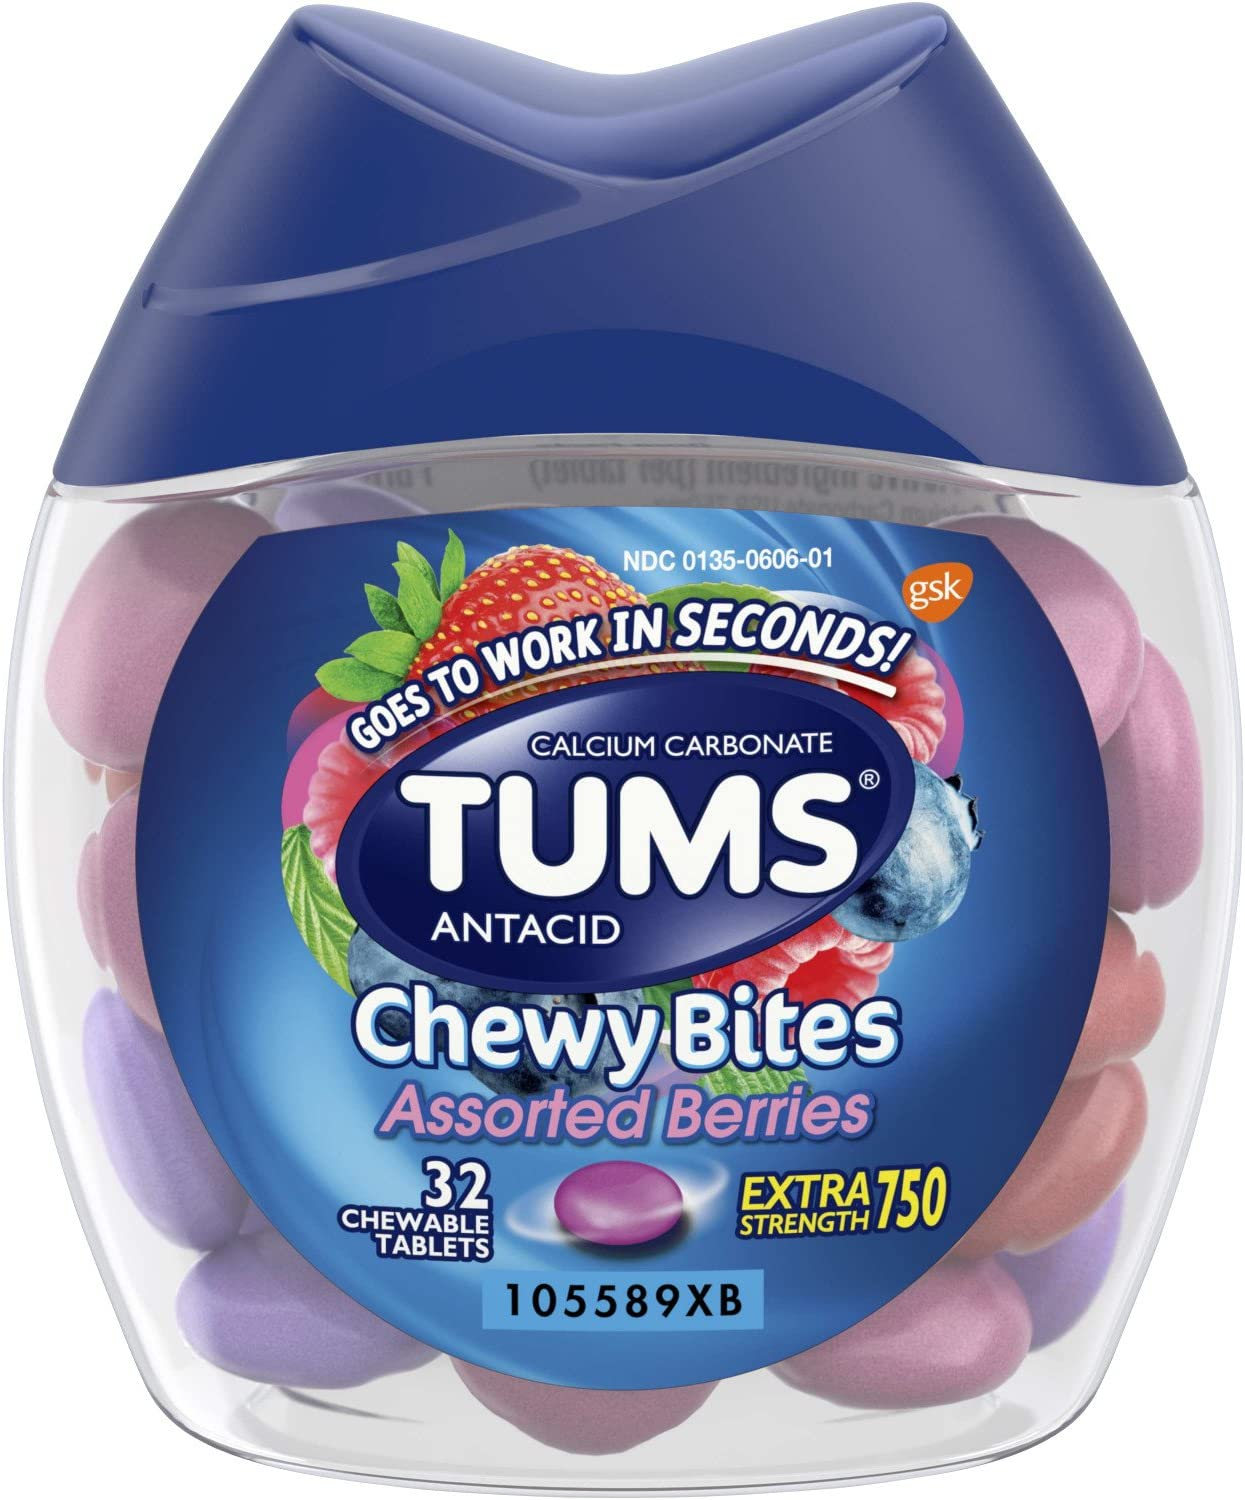 TUMS Chewy Bites Assorted Berries Antacid Hard Shell Chews for Heartburn Relief, 32 count: Health & Personal Care